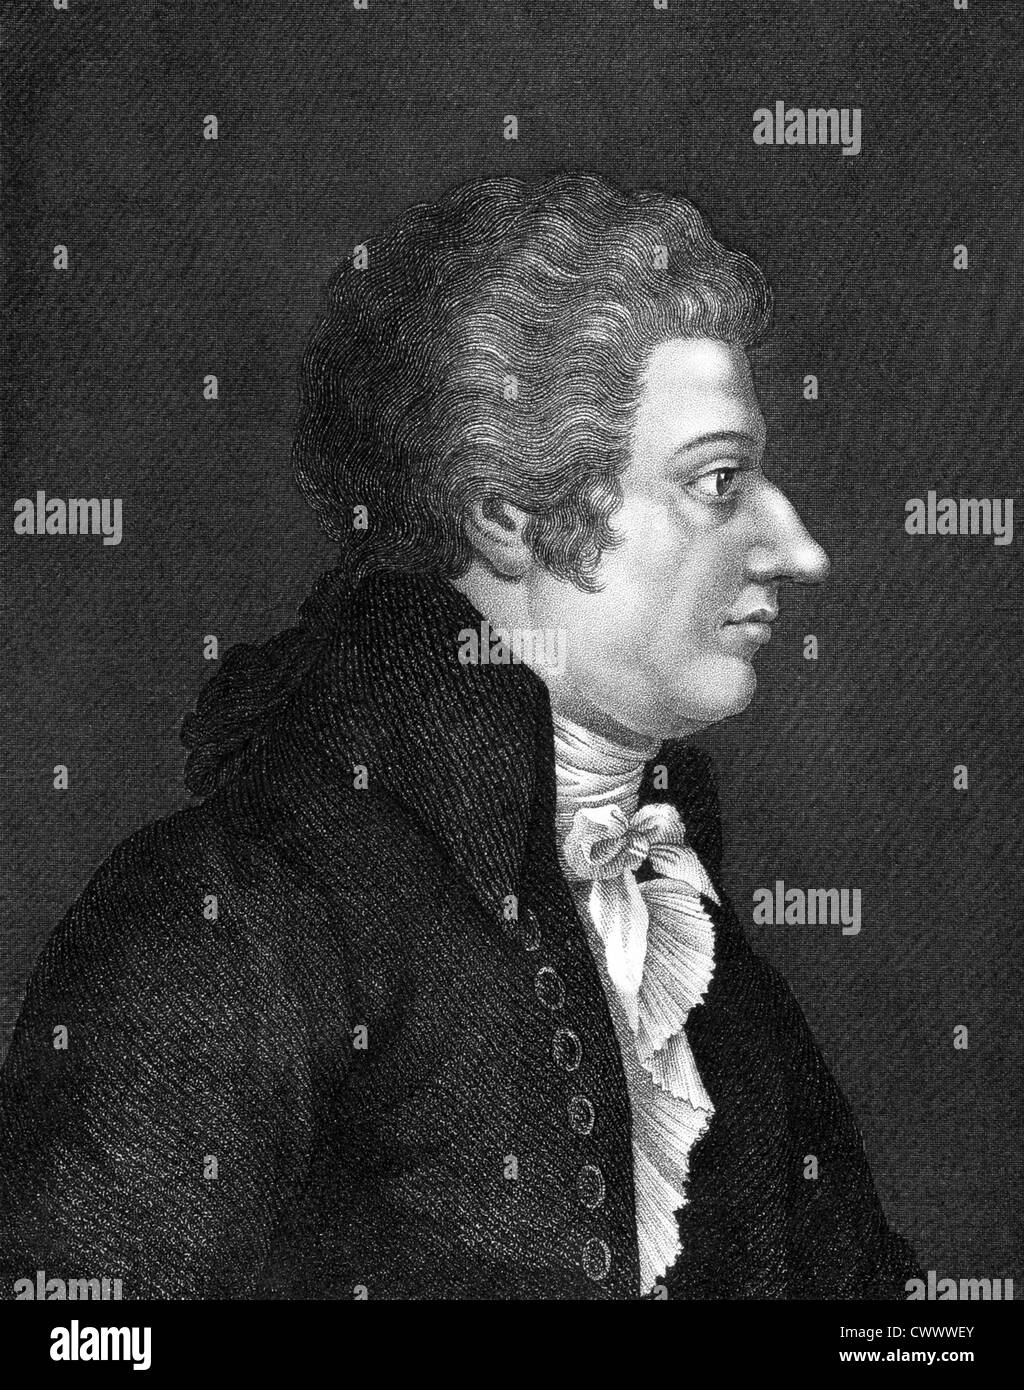 Wolfgang Amadeus Mozart (1756-1791) on engraving from 1859. One of the most significant and influential music composers. - Stock Image